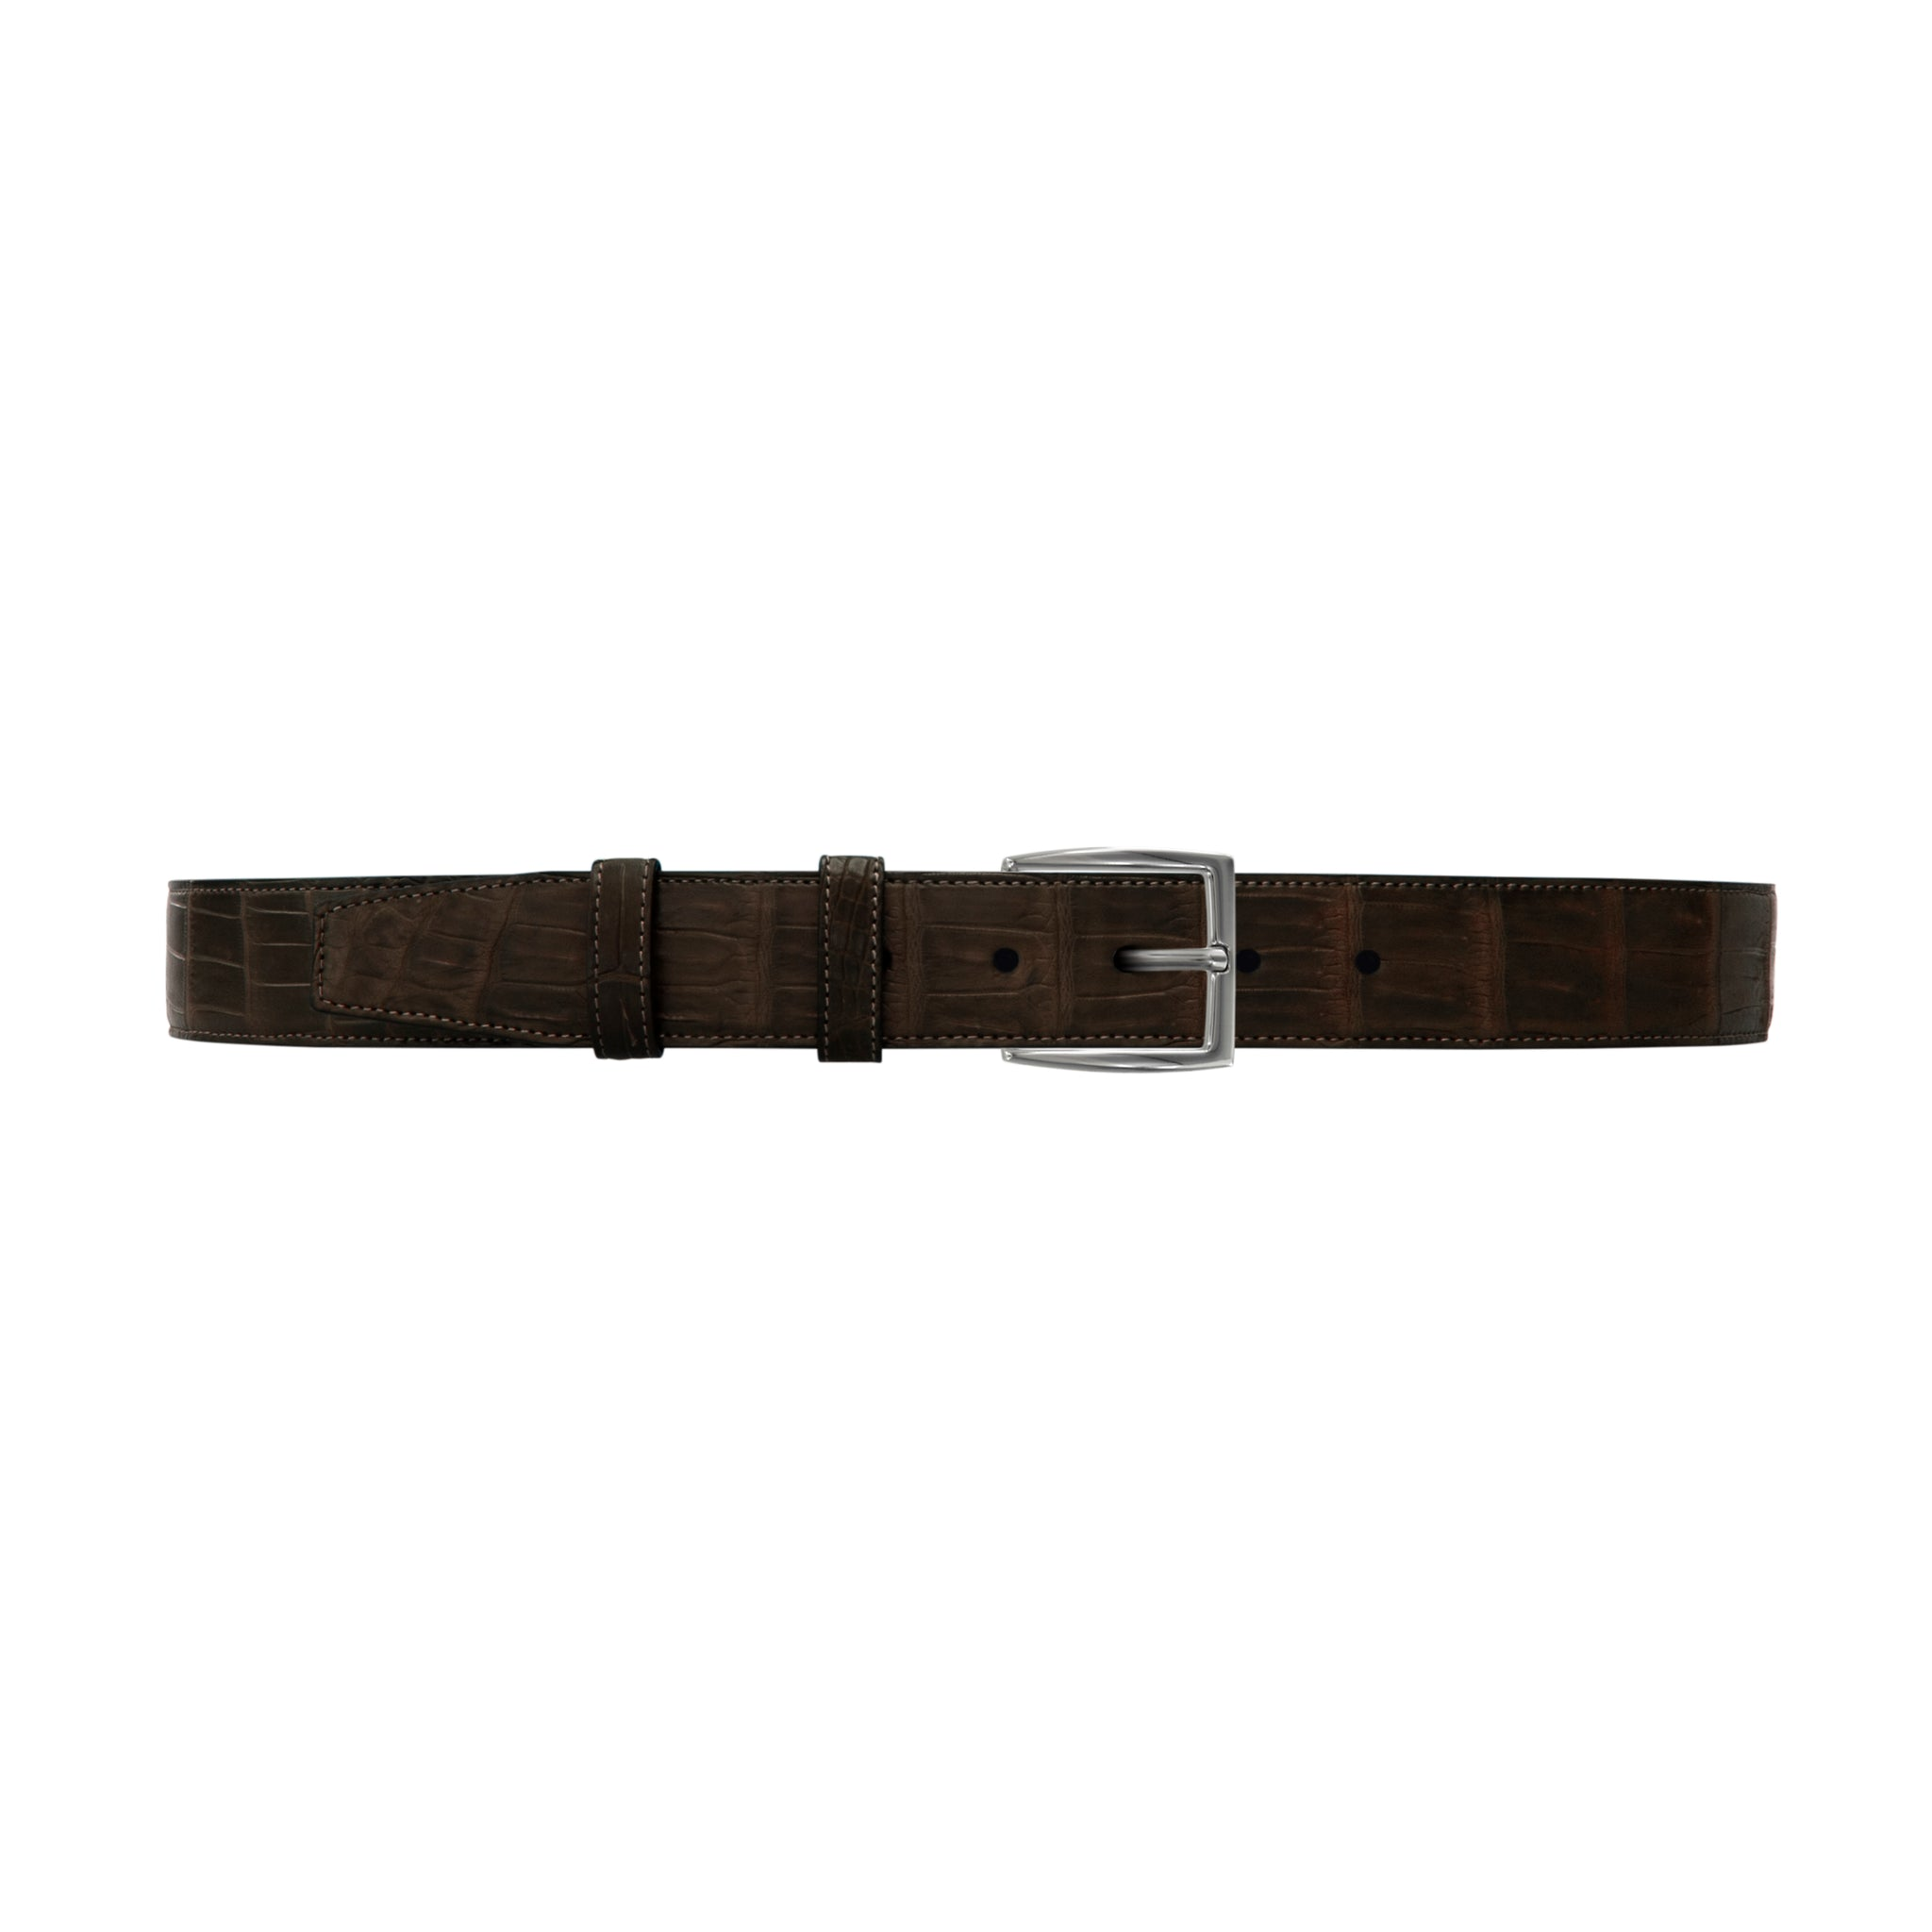 "1 1/2"" Espresso Classic Belt with Winston Dress Buckle in Polished Nickel"